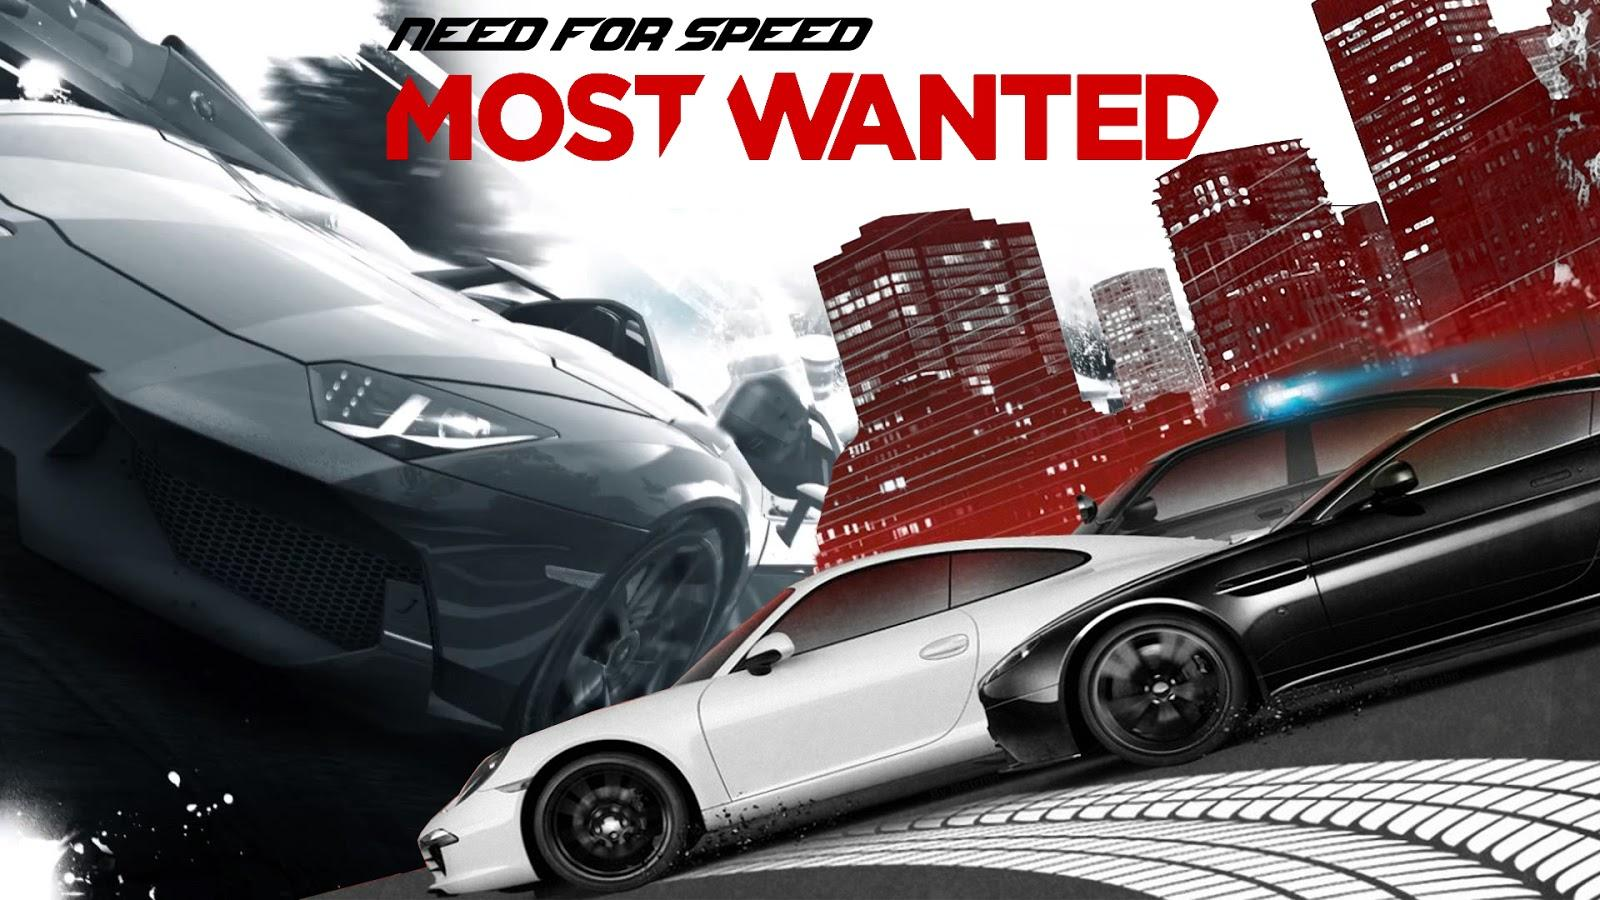 Download Need for Speed Most Wanted Limited Edition v.1.5.0.0 + All DLCs FitGirl Repack